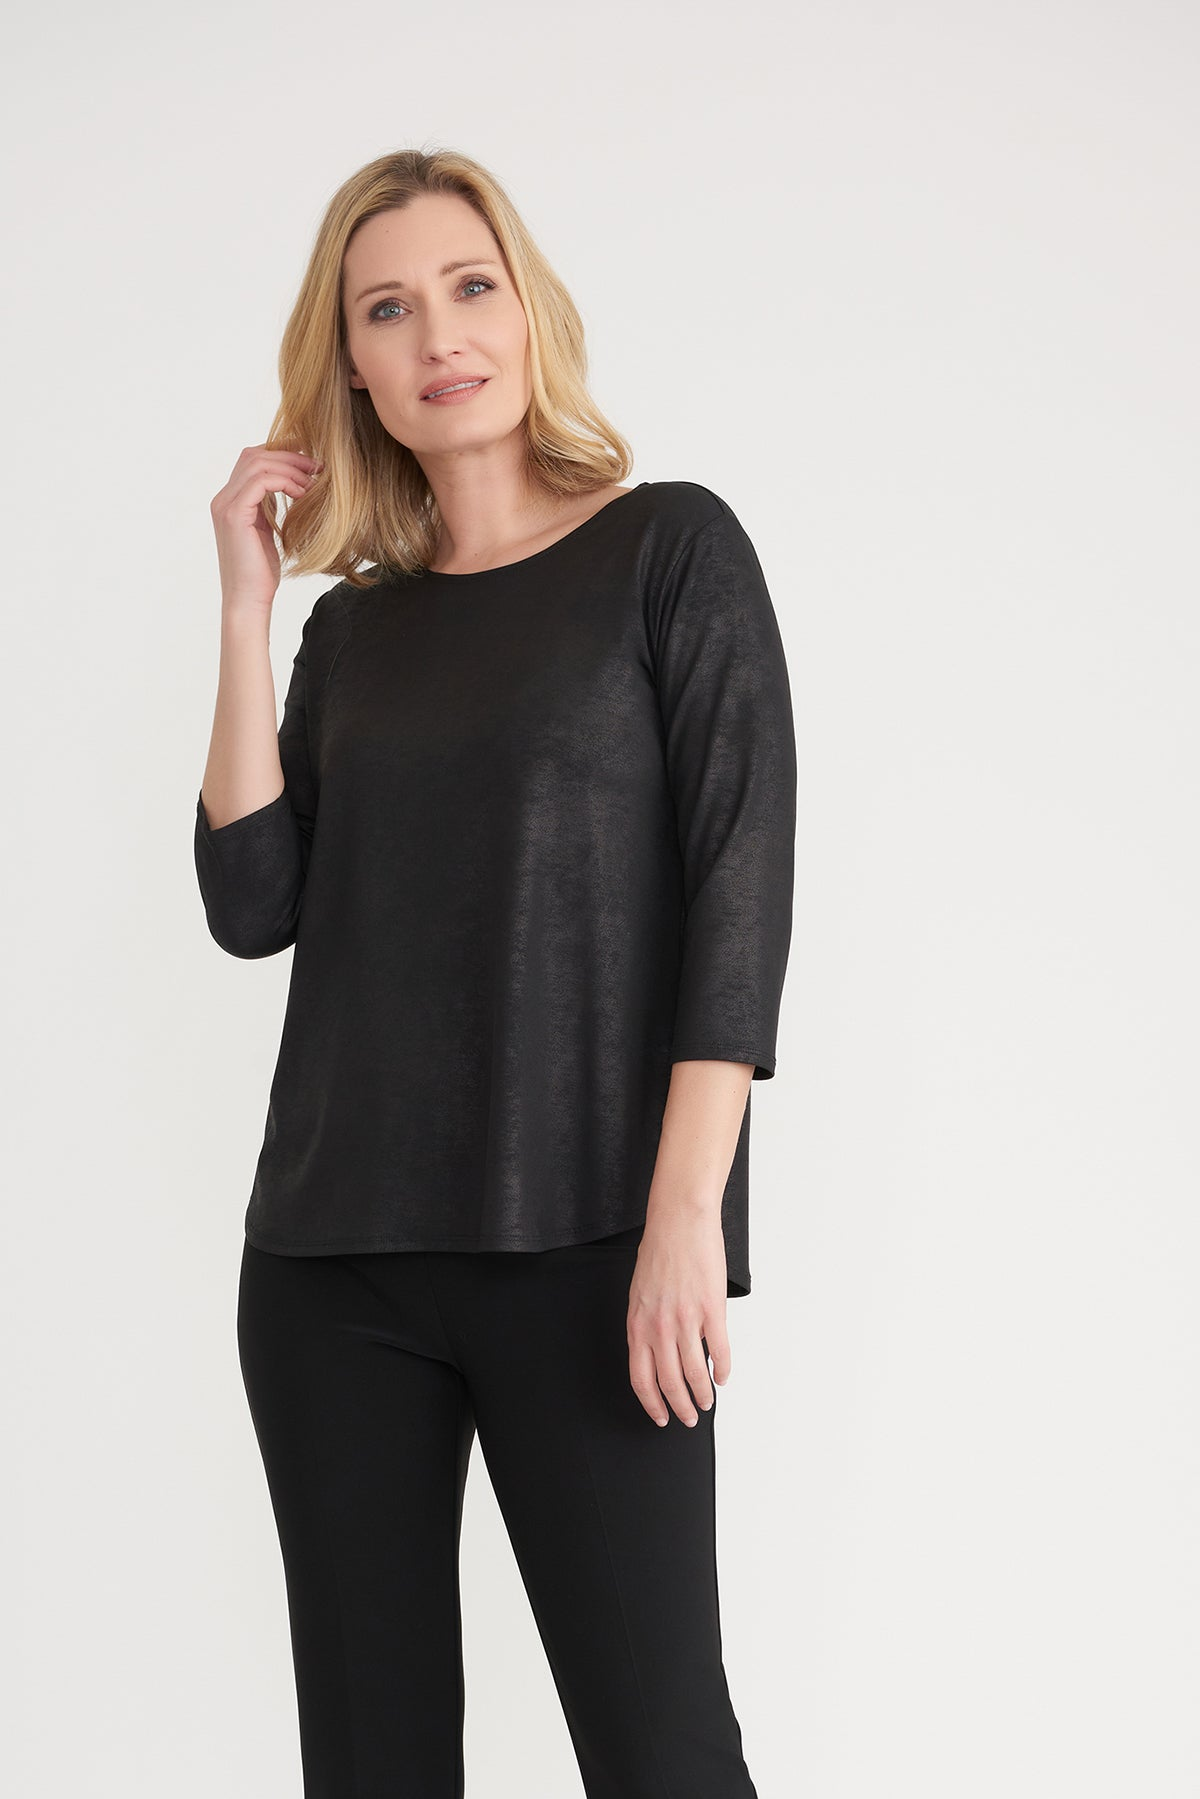 Solid Brushed Fabric Top